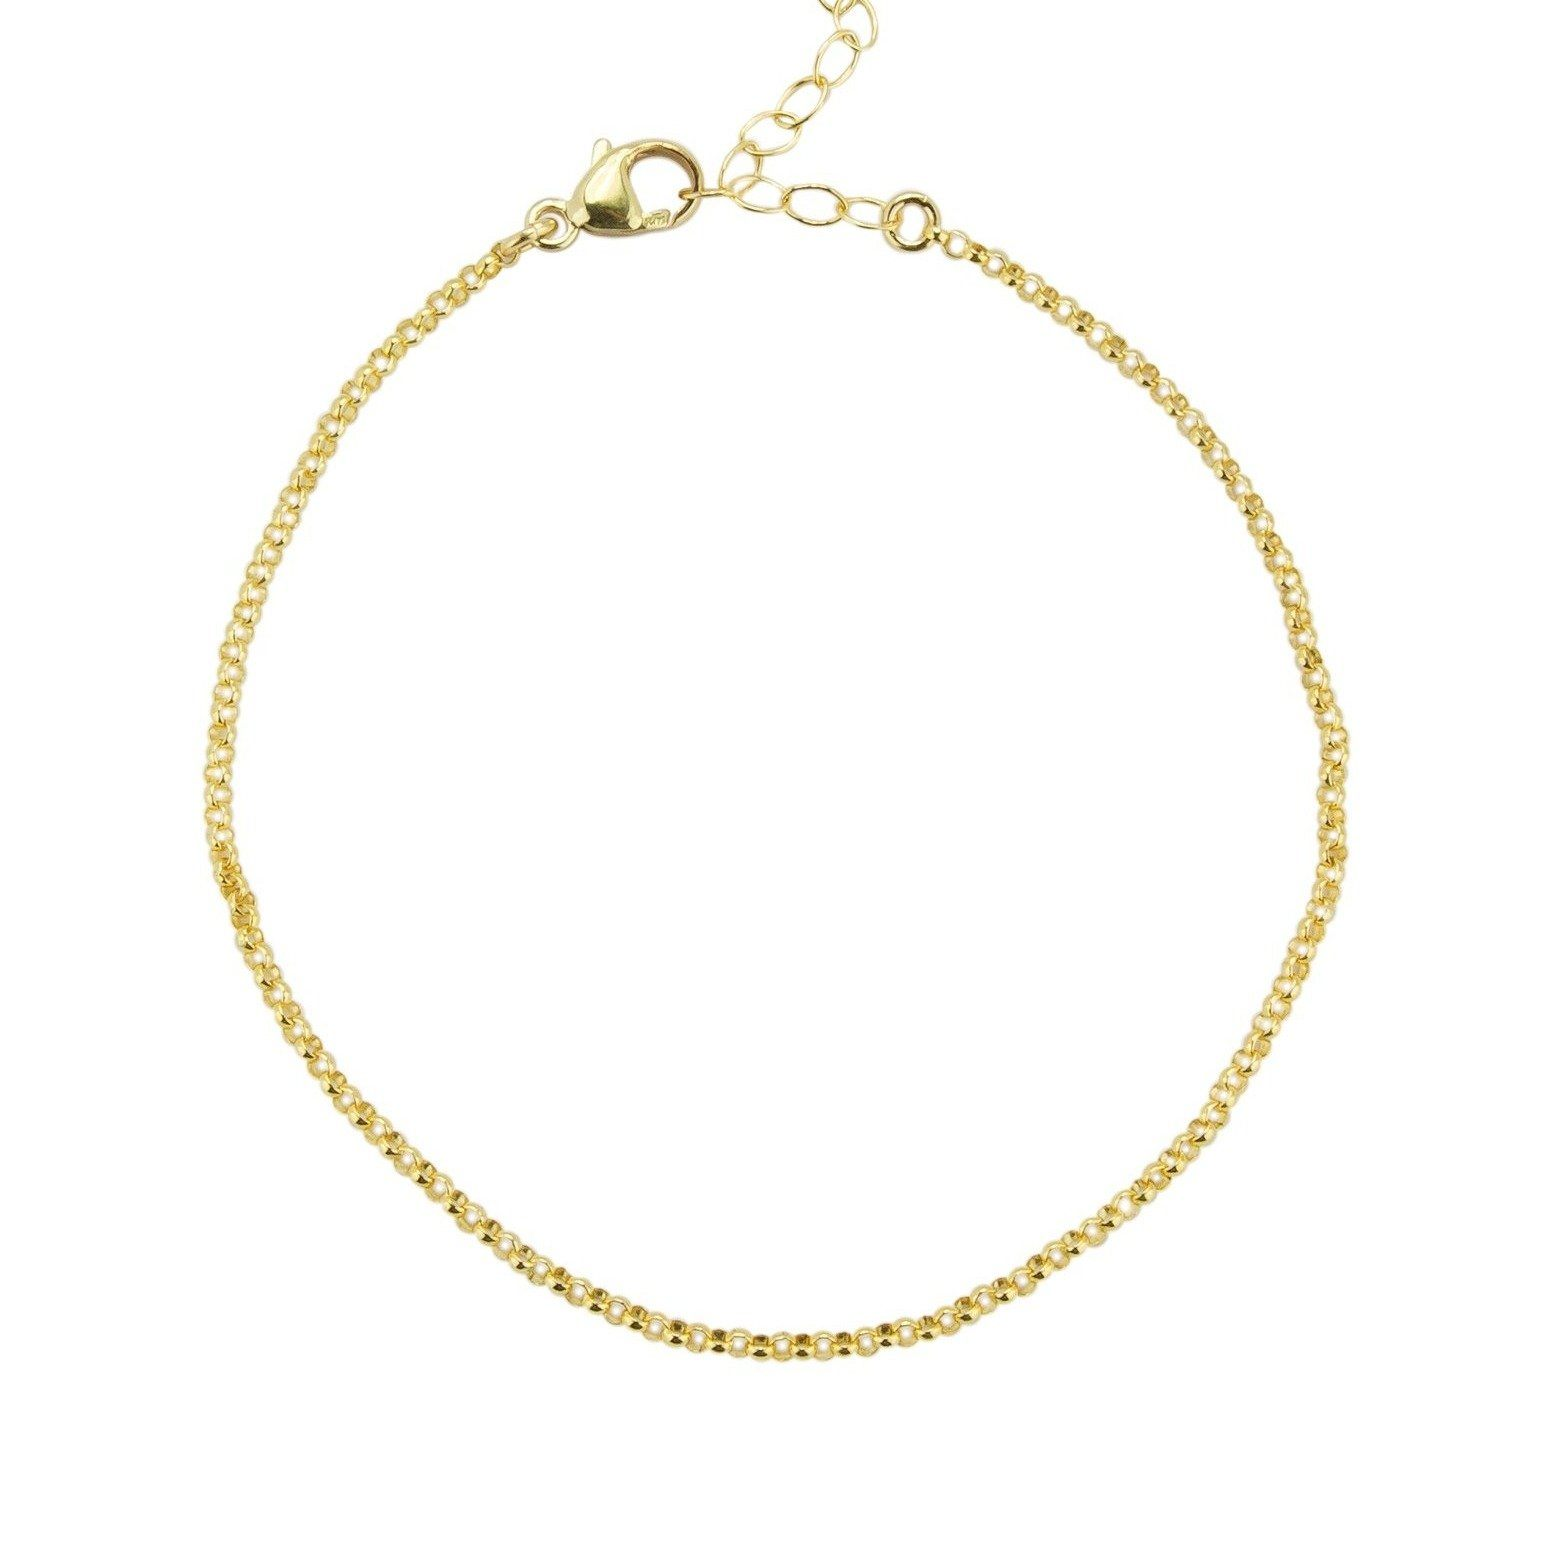 Gold Rolo Chain Bracelet against a white background.